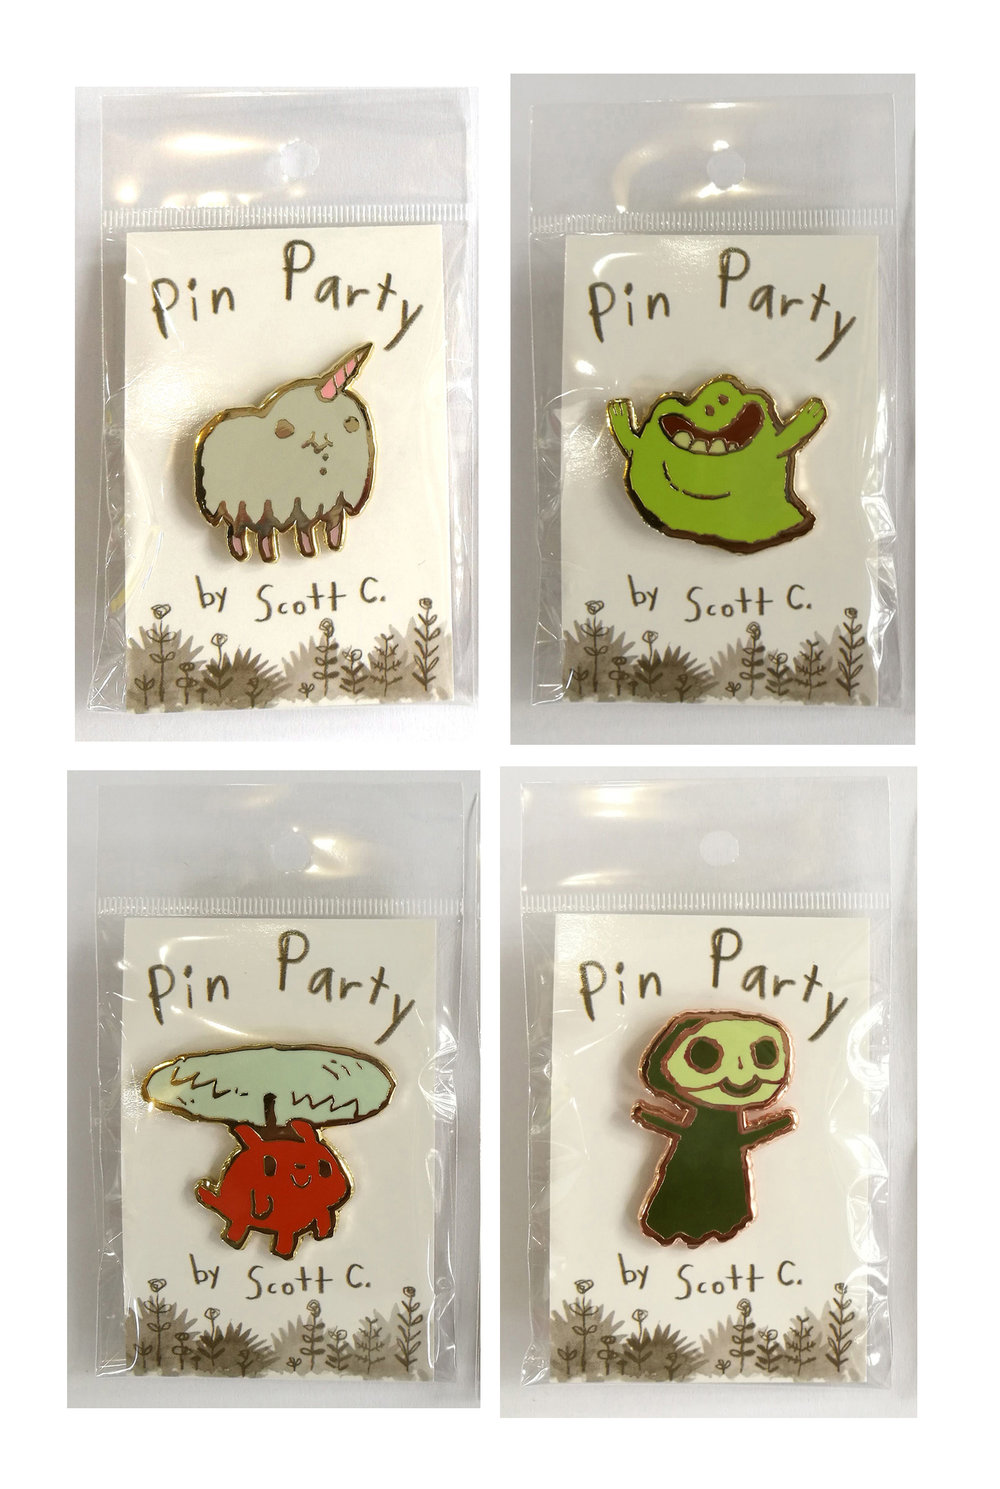 NEW PINS! $10 each